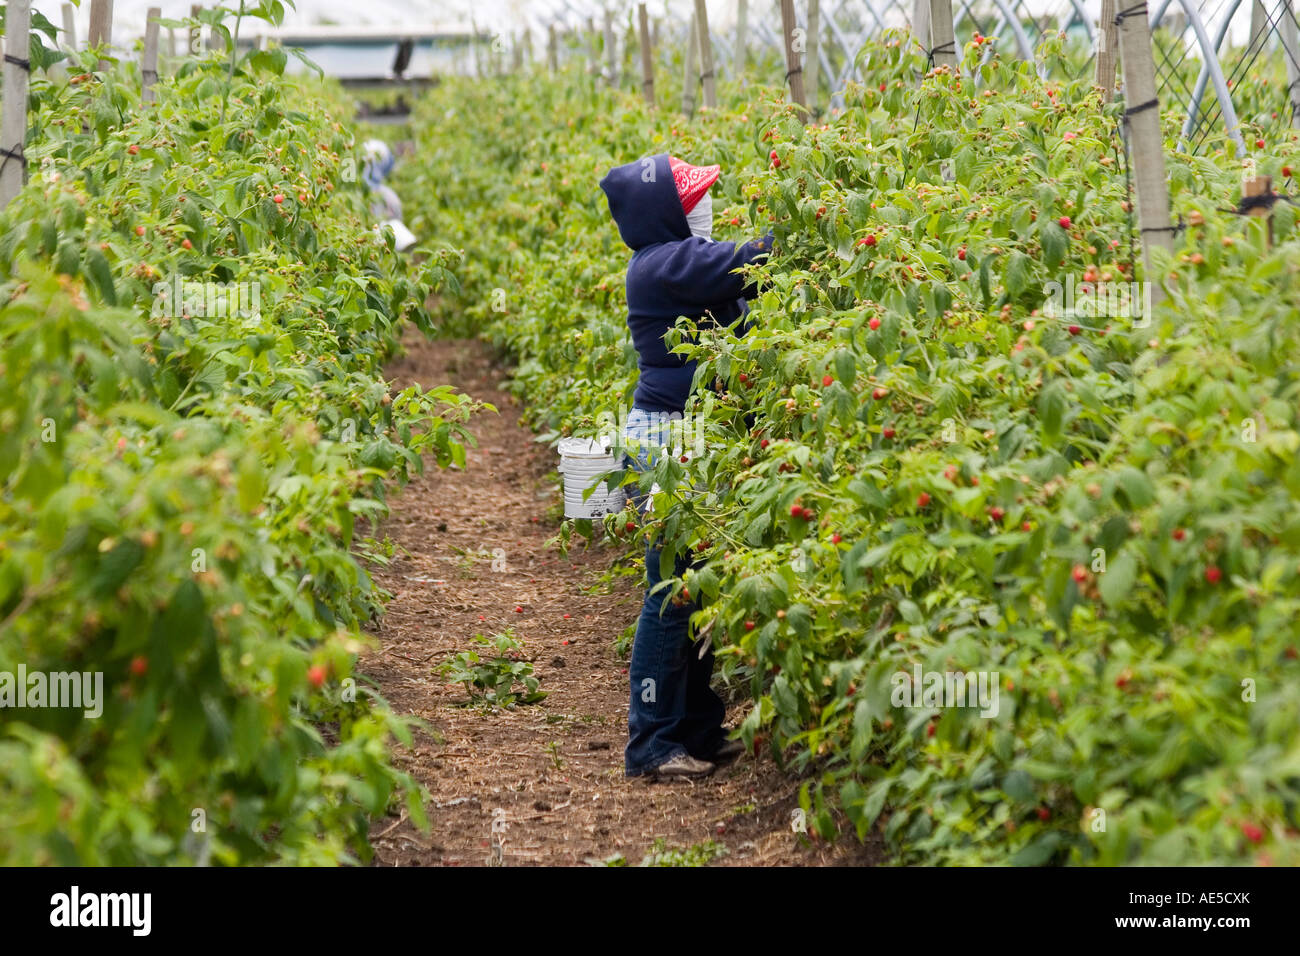 Female immigrant farm worker reaching into a row of raspberry crops to pick the berries in a California field - Stock Image